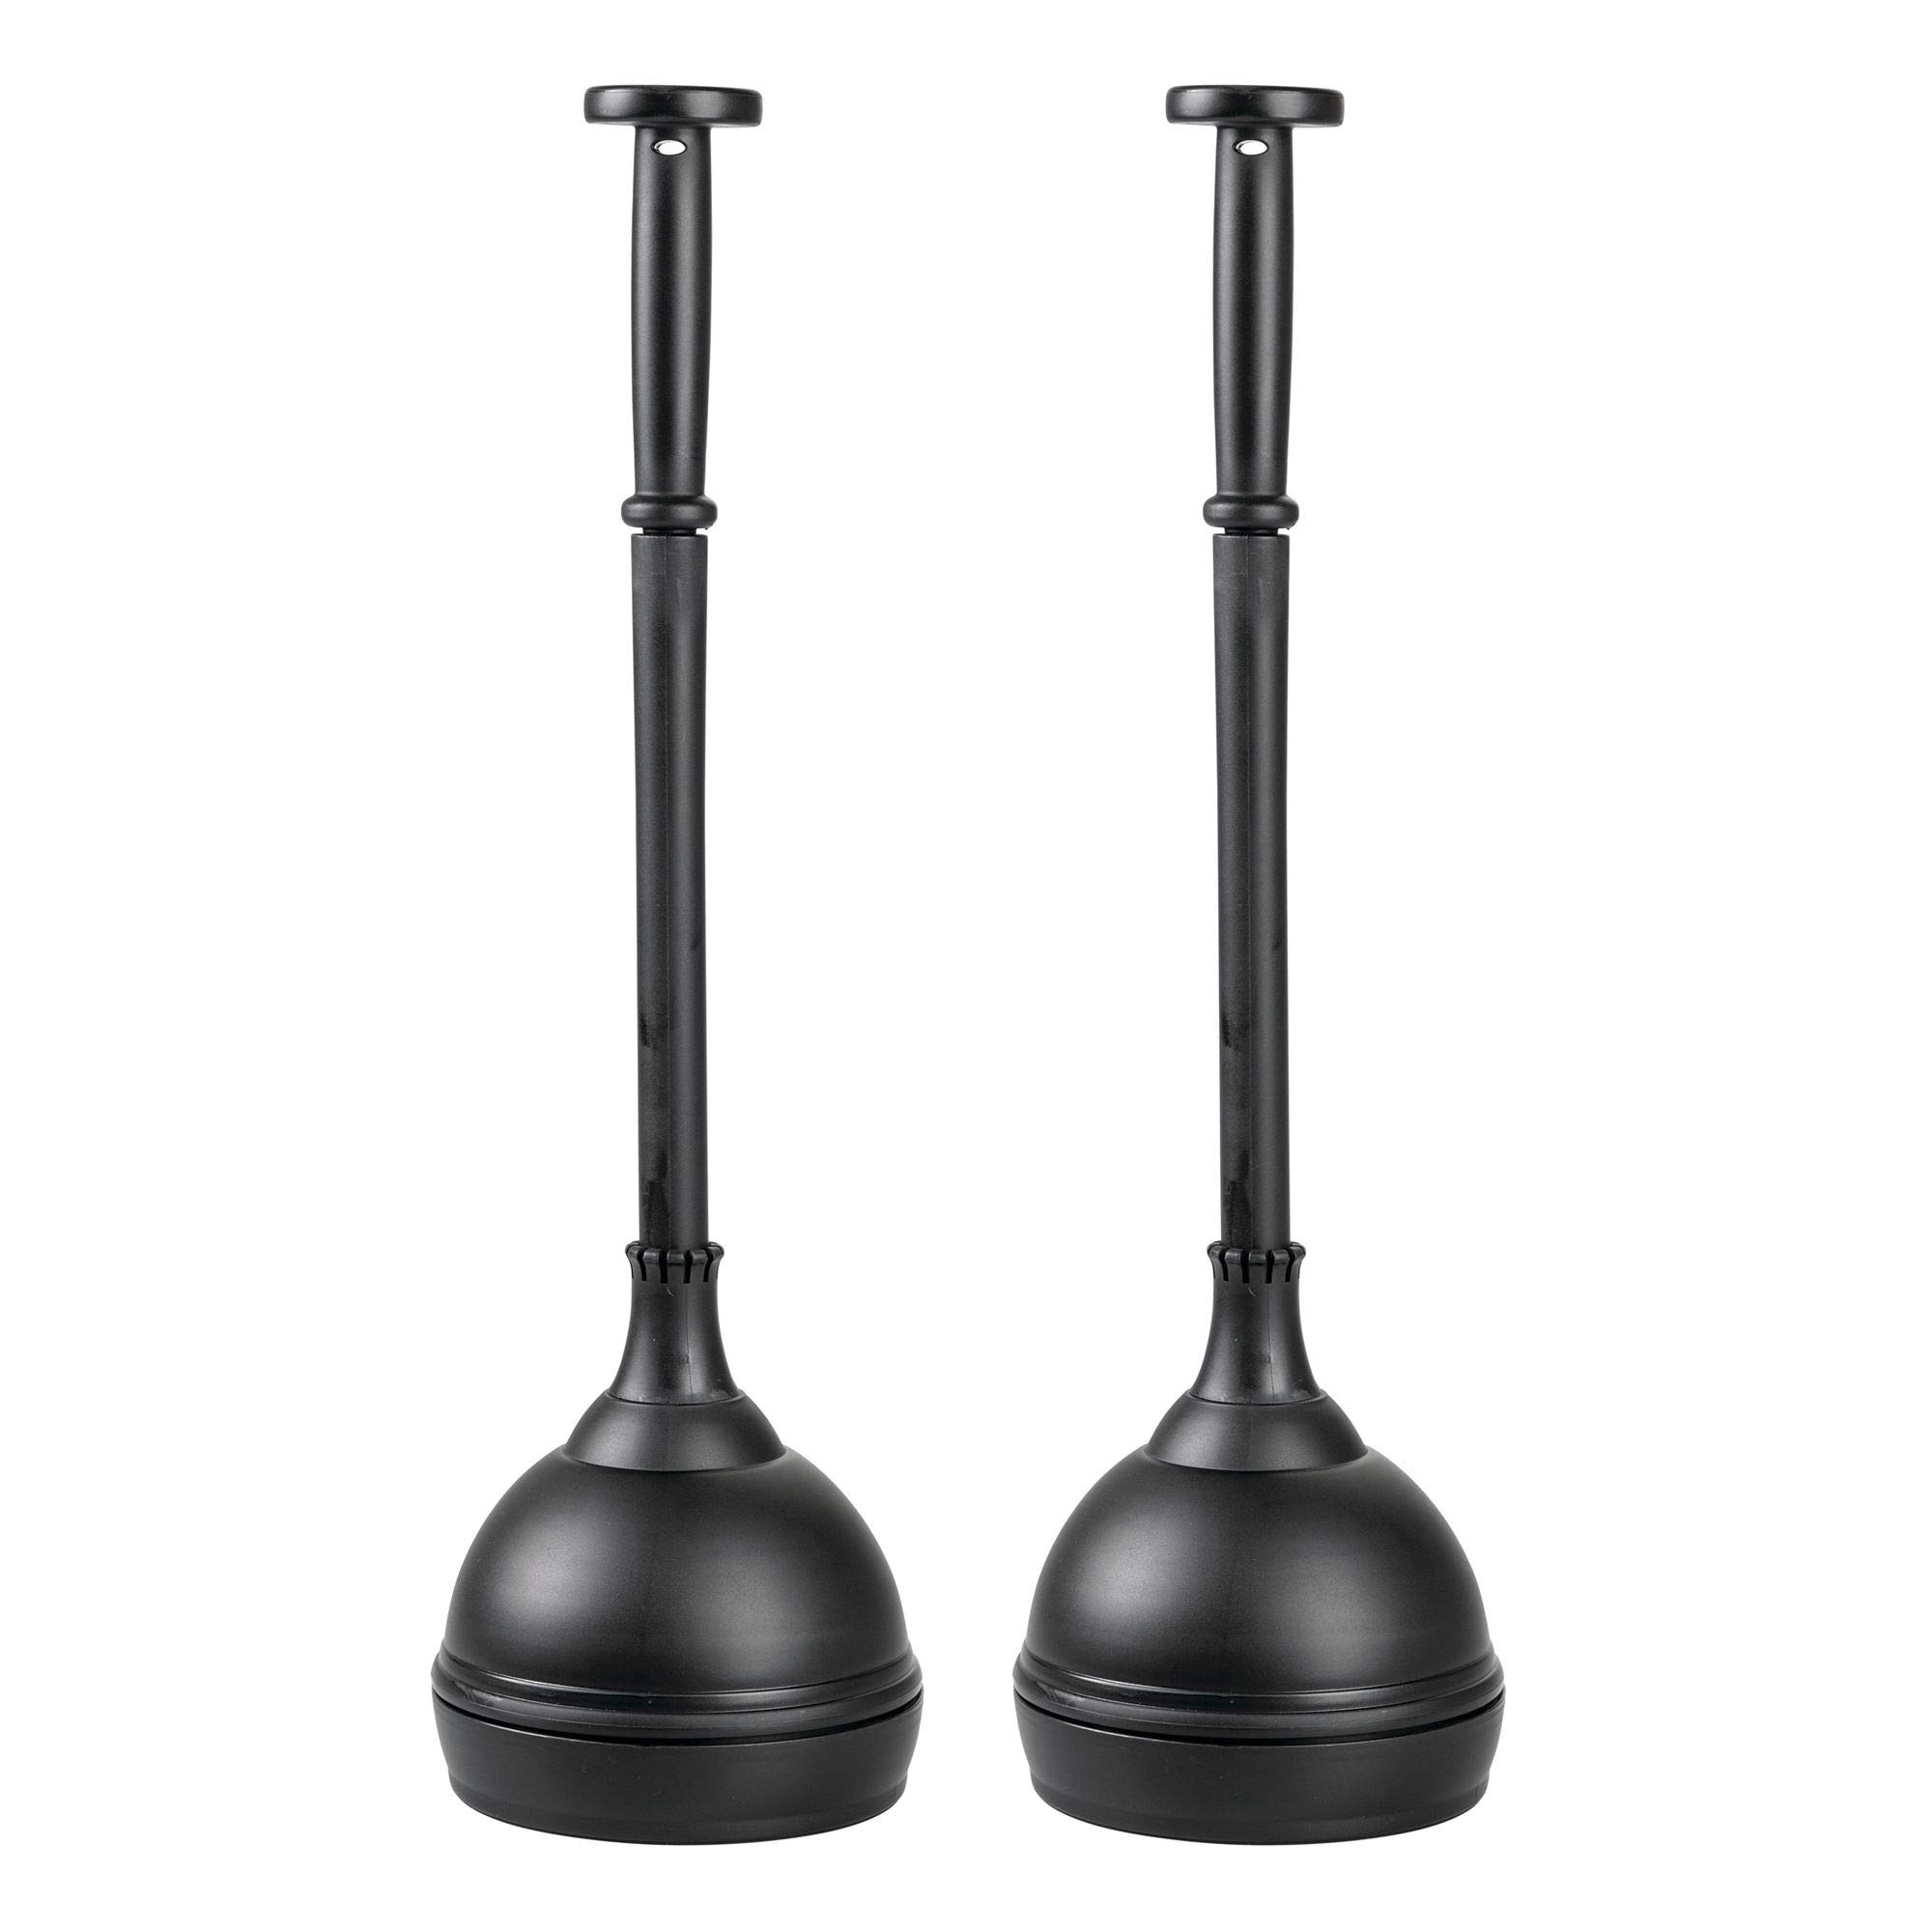 mDesign Bathroom Toilet Bowl Plunger Set with Lift & Lock Cover, Compact Discreet Freestanding Storage Caddy with Base, Sleek Modern Design - Pack of 2, Heavy Duty Rustproof Plastic, Black